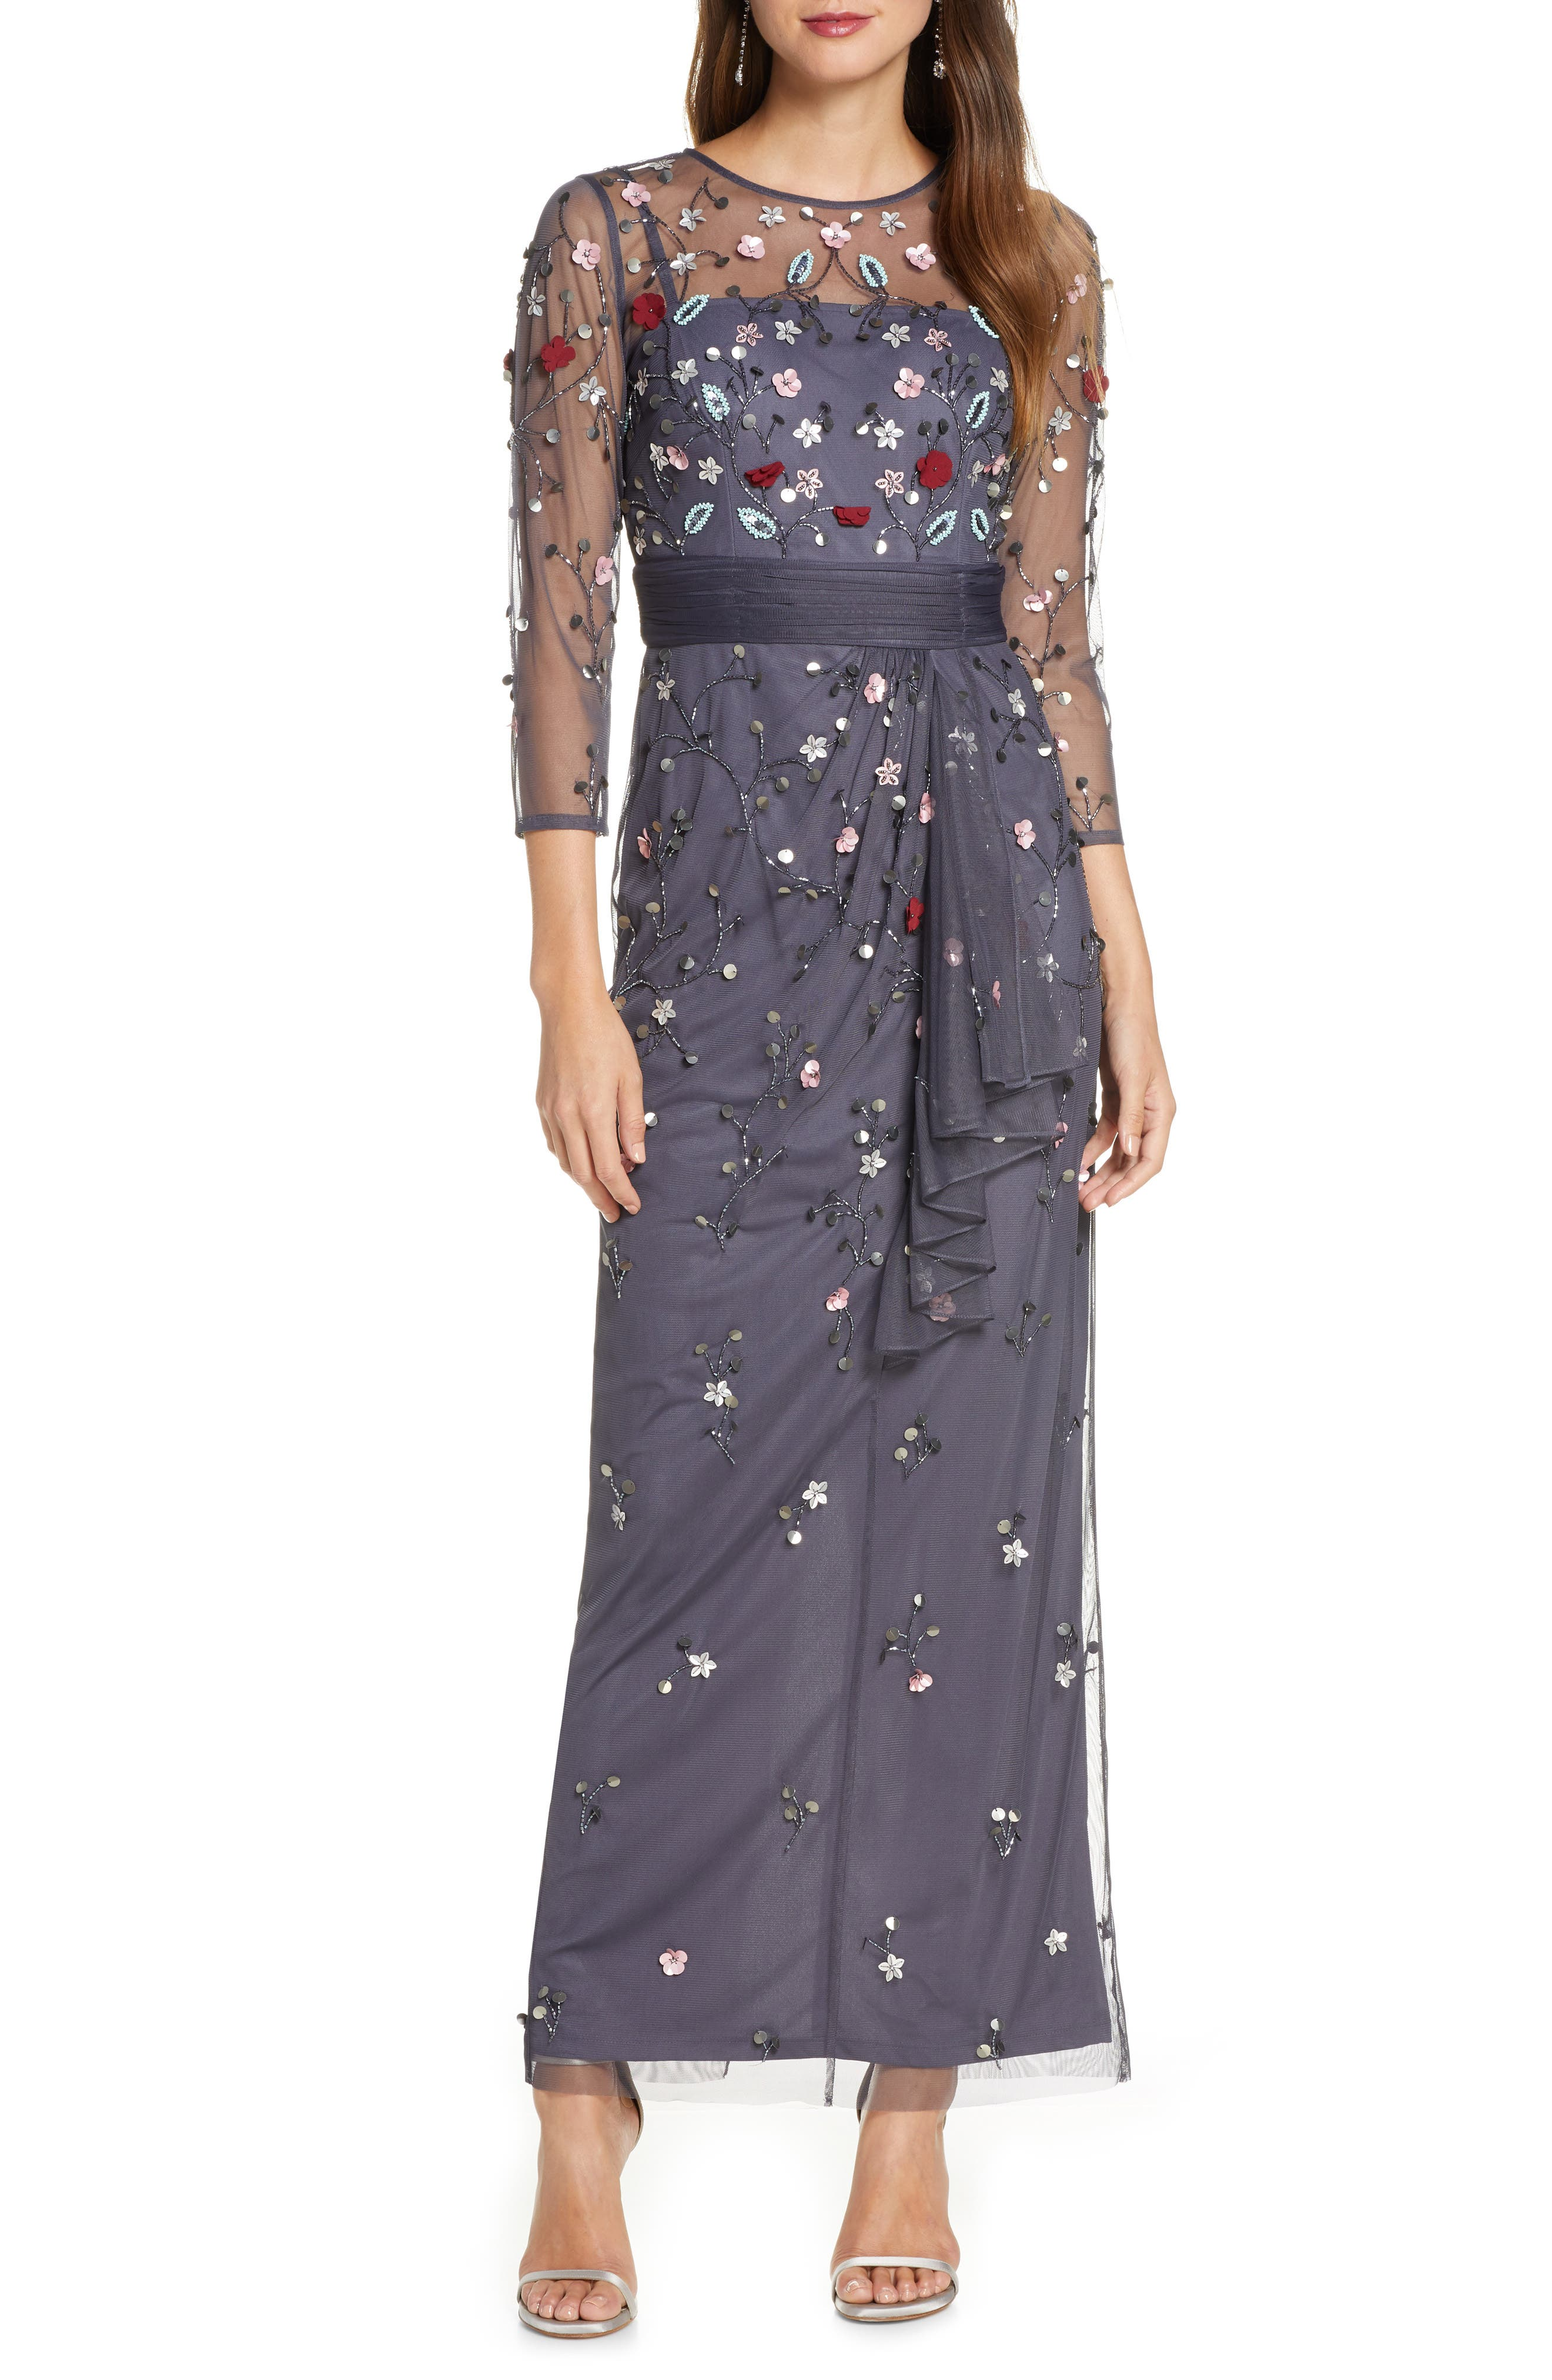 Edwardian Evening Gowns | Victorian Evening Dresses Womens Js Collections Floral 3D Embellished Gown $298.00 AT vintagedancer.com